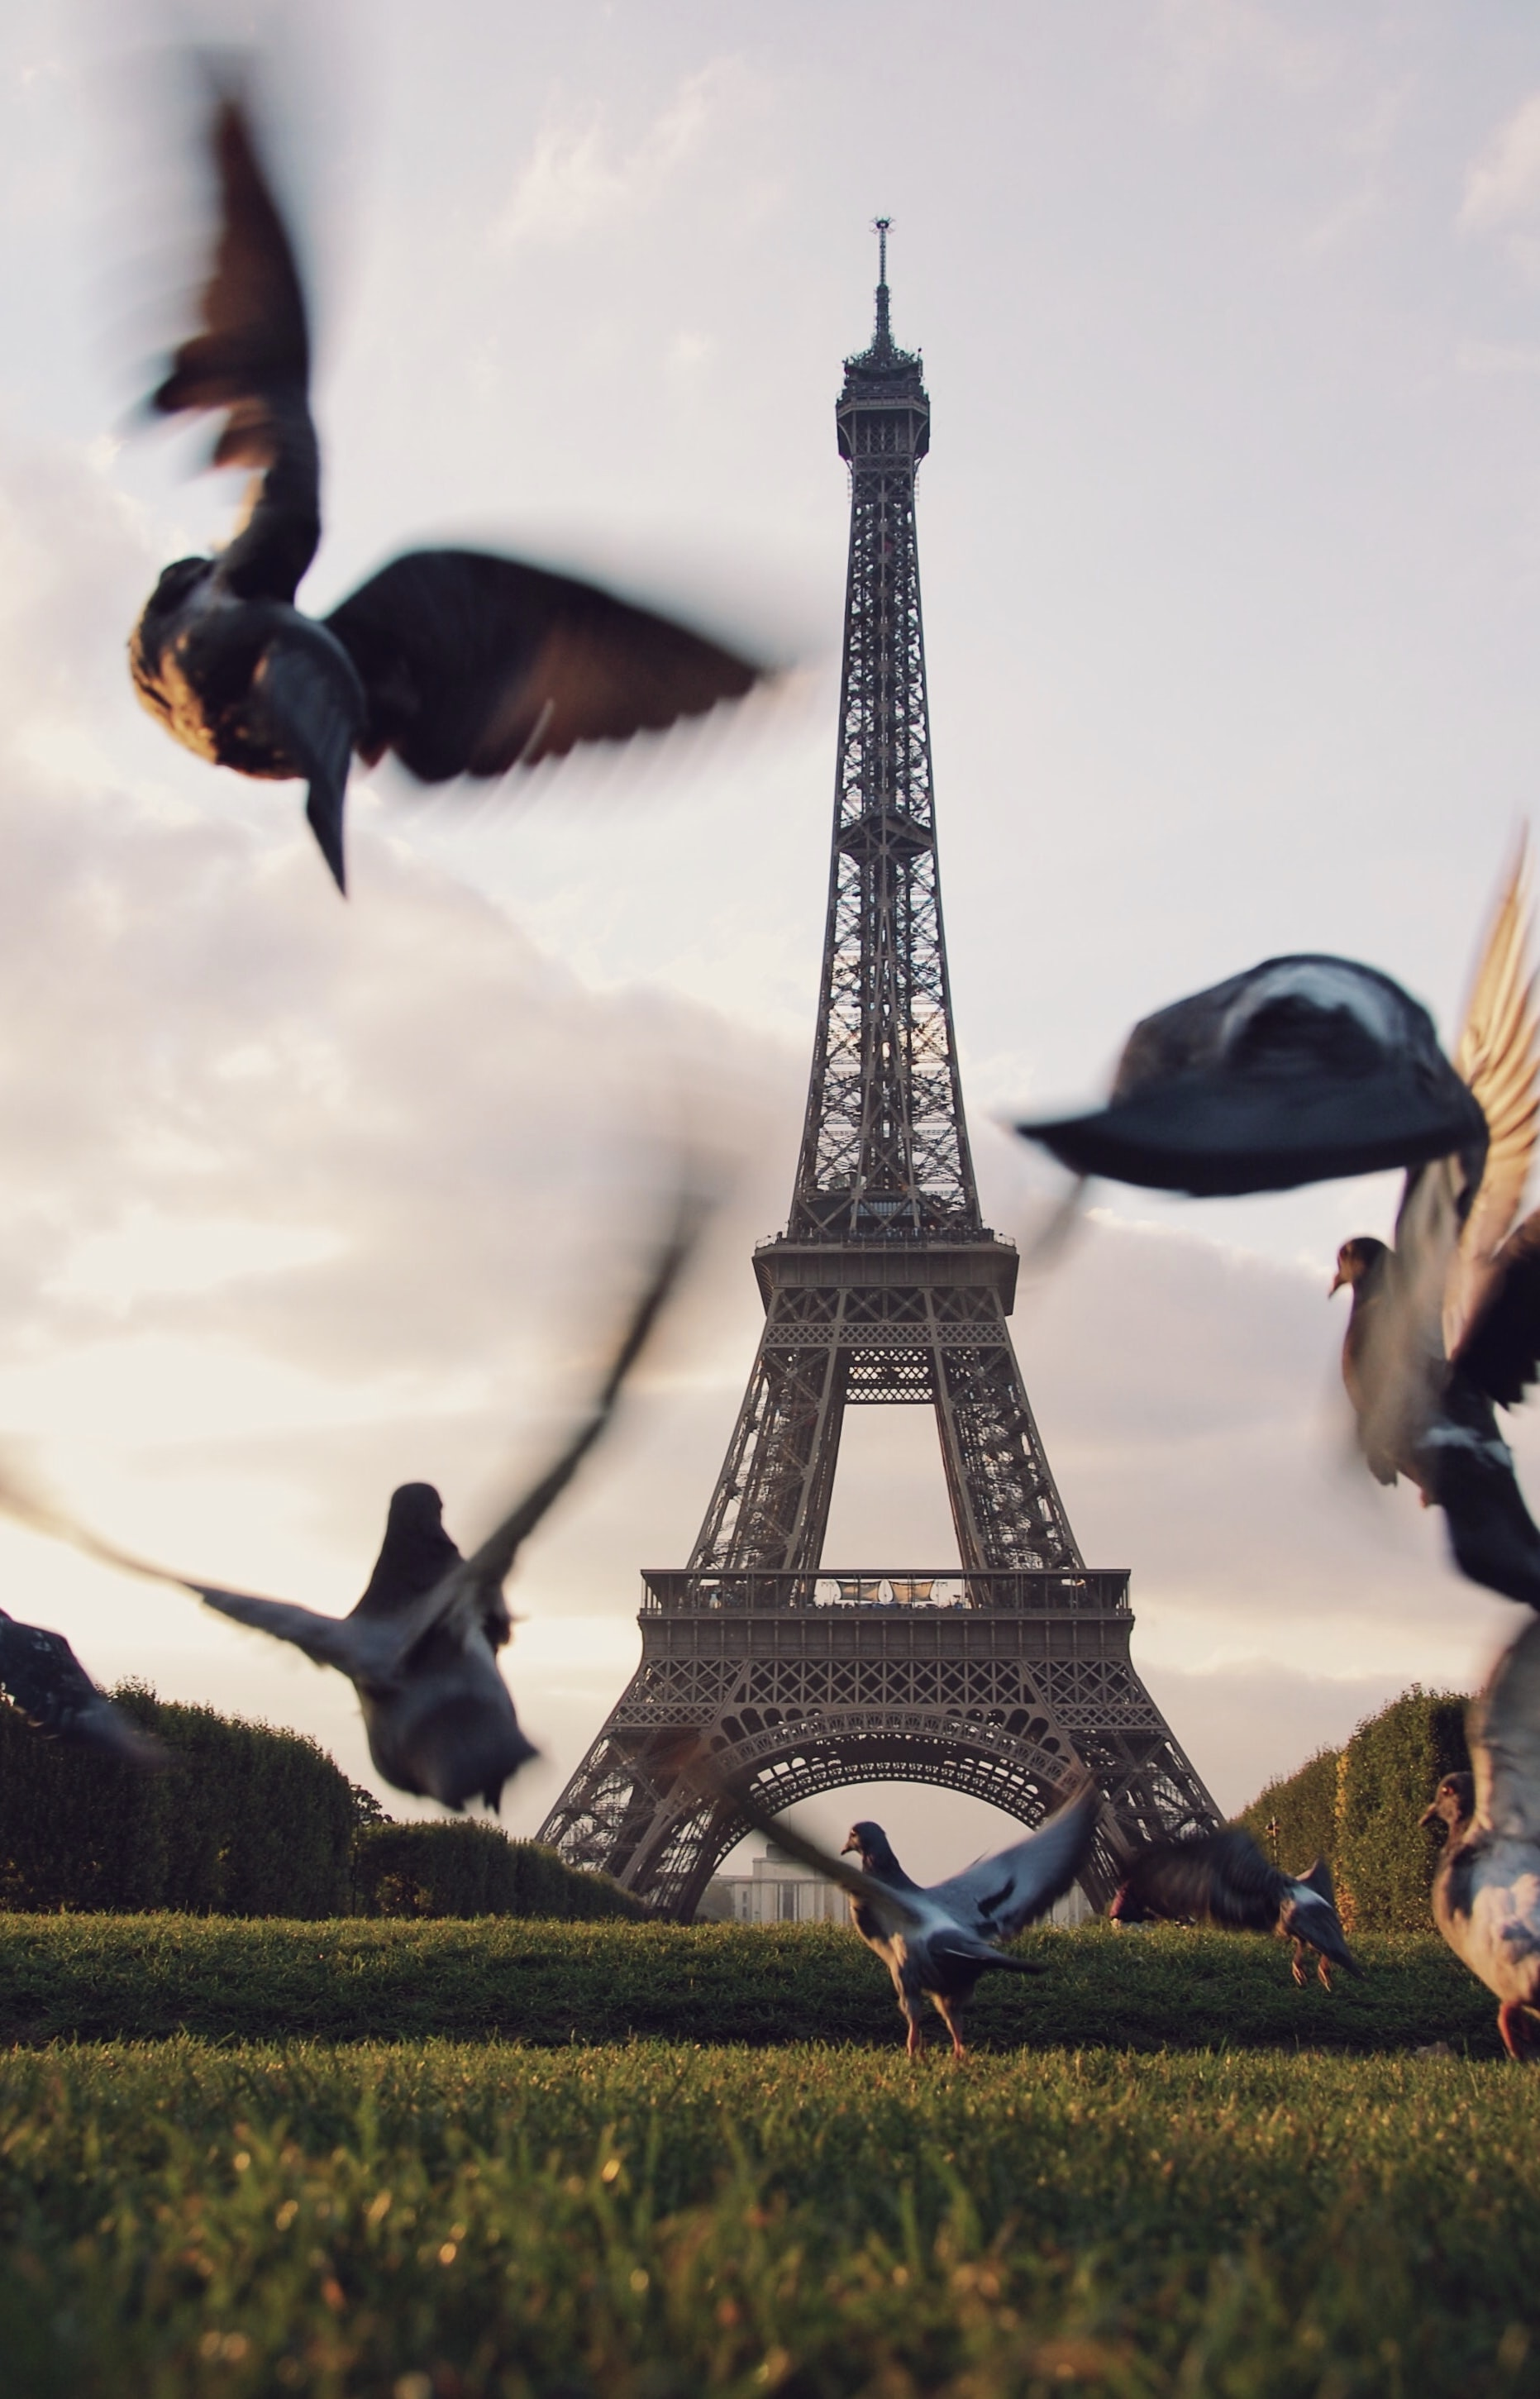 flight of pigeons flying above grass field near Eiffel tower in Paris